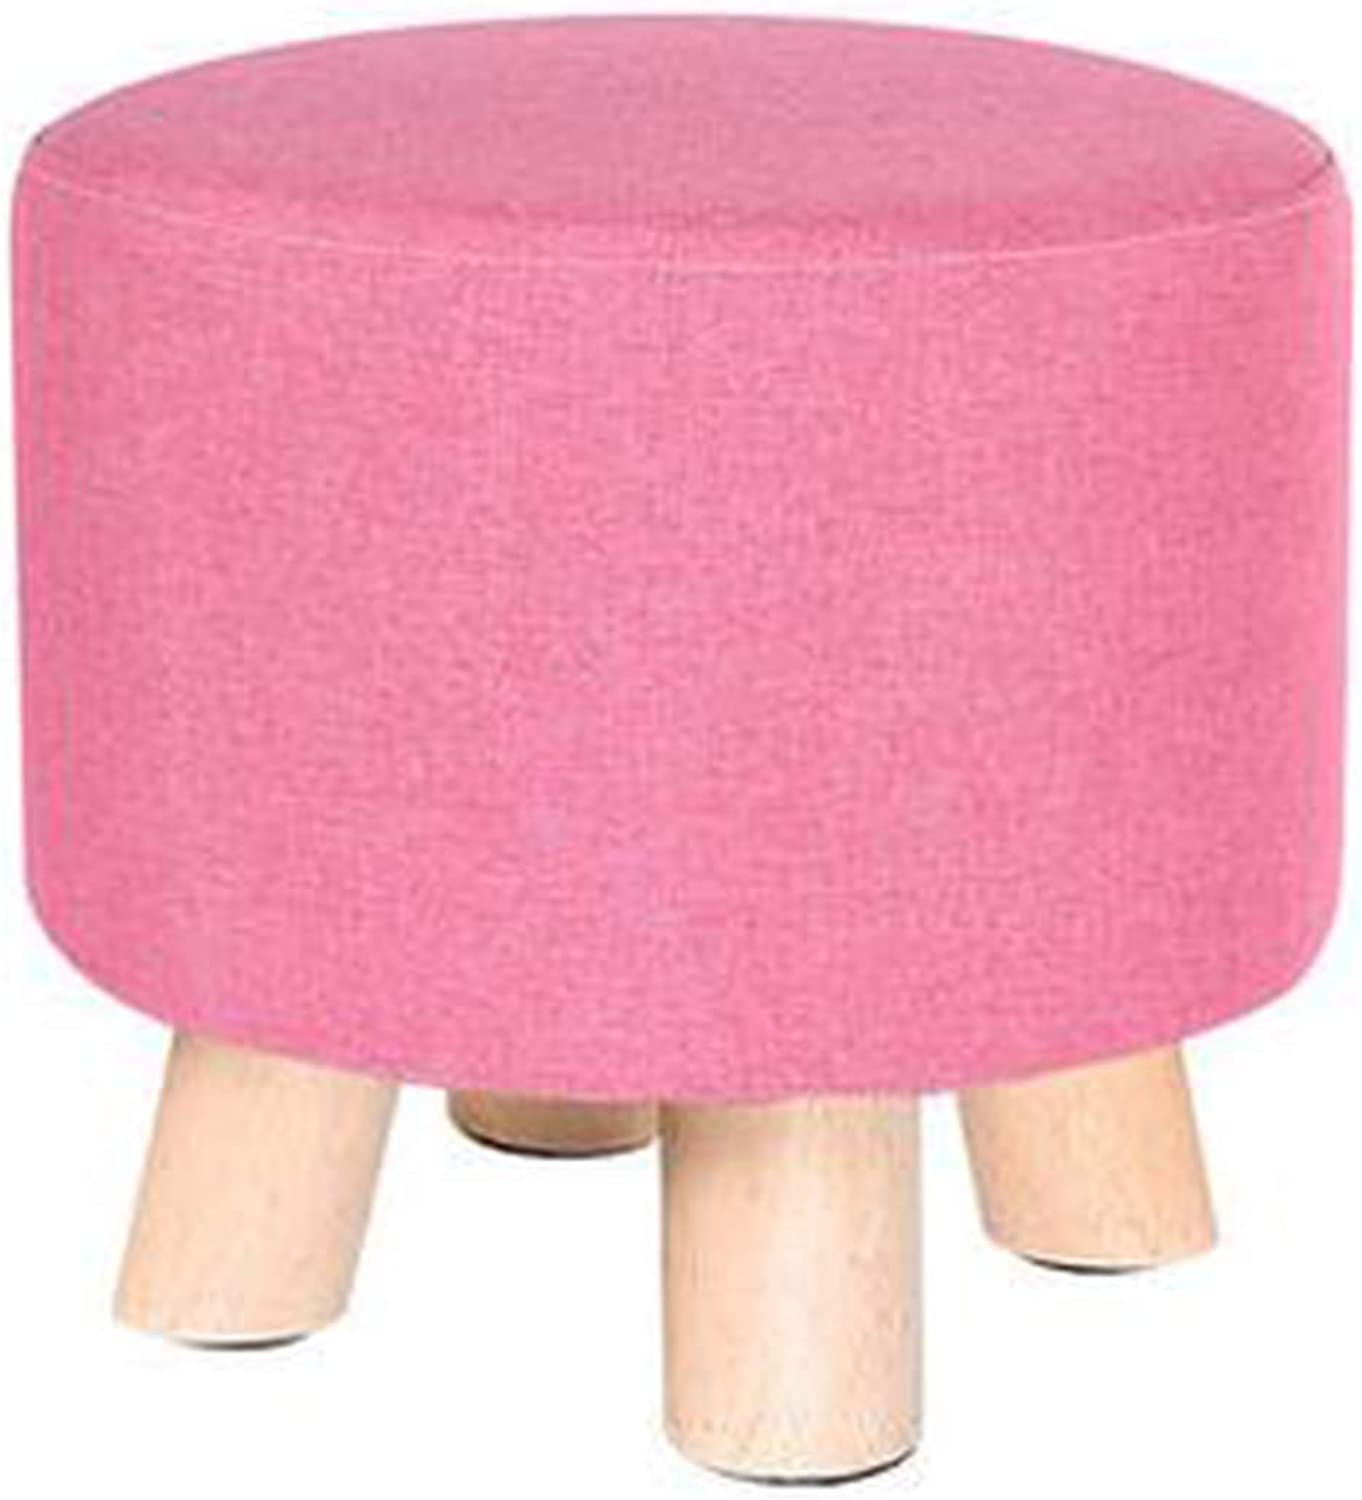 Creative Round Wooden Footstool Linen Foot Rest Stool Adult Kids Applicable, Pink